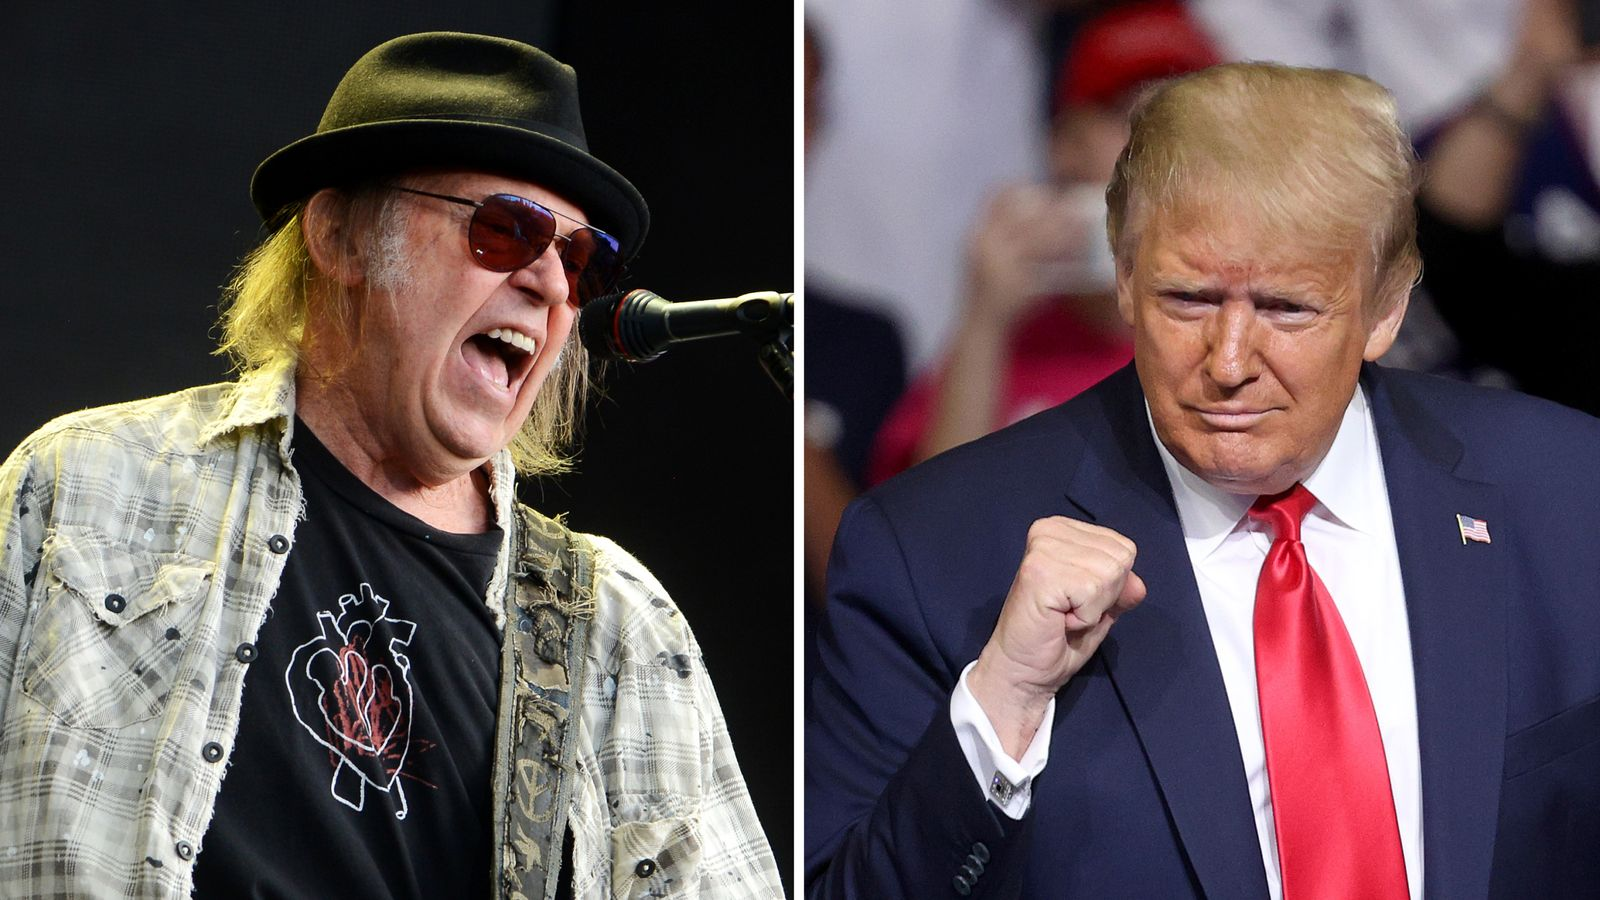 Neil Young sues Trump campaign for using his music 'as theme song' thumbnail